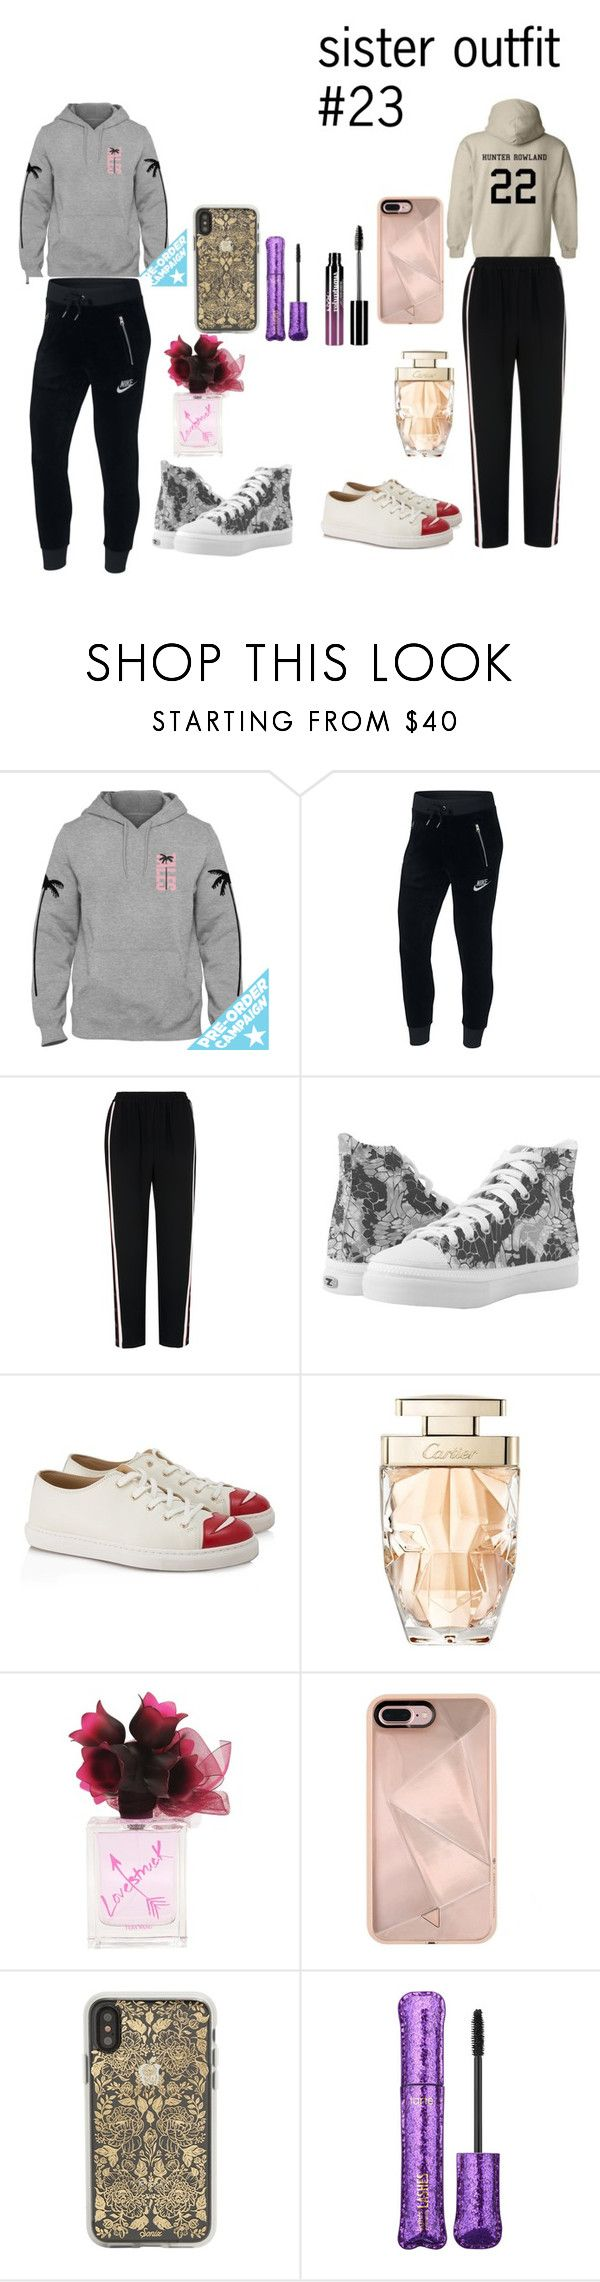 """""""sister outfit #23"""" by rc3149 ❤ liked on Polyvore featuring NIKE, Whistles, Charlotte Olympia, Cartier, Rebecca Minkoff, Sonix, tarte, Charlotte Russe and plus size clothing"""